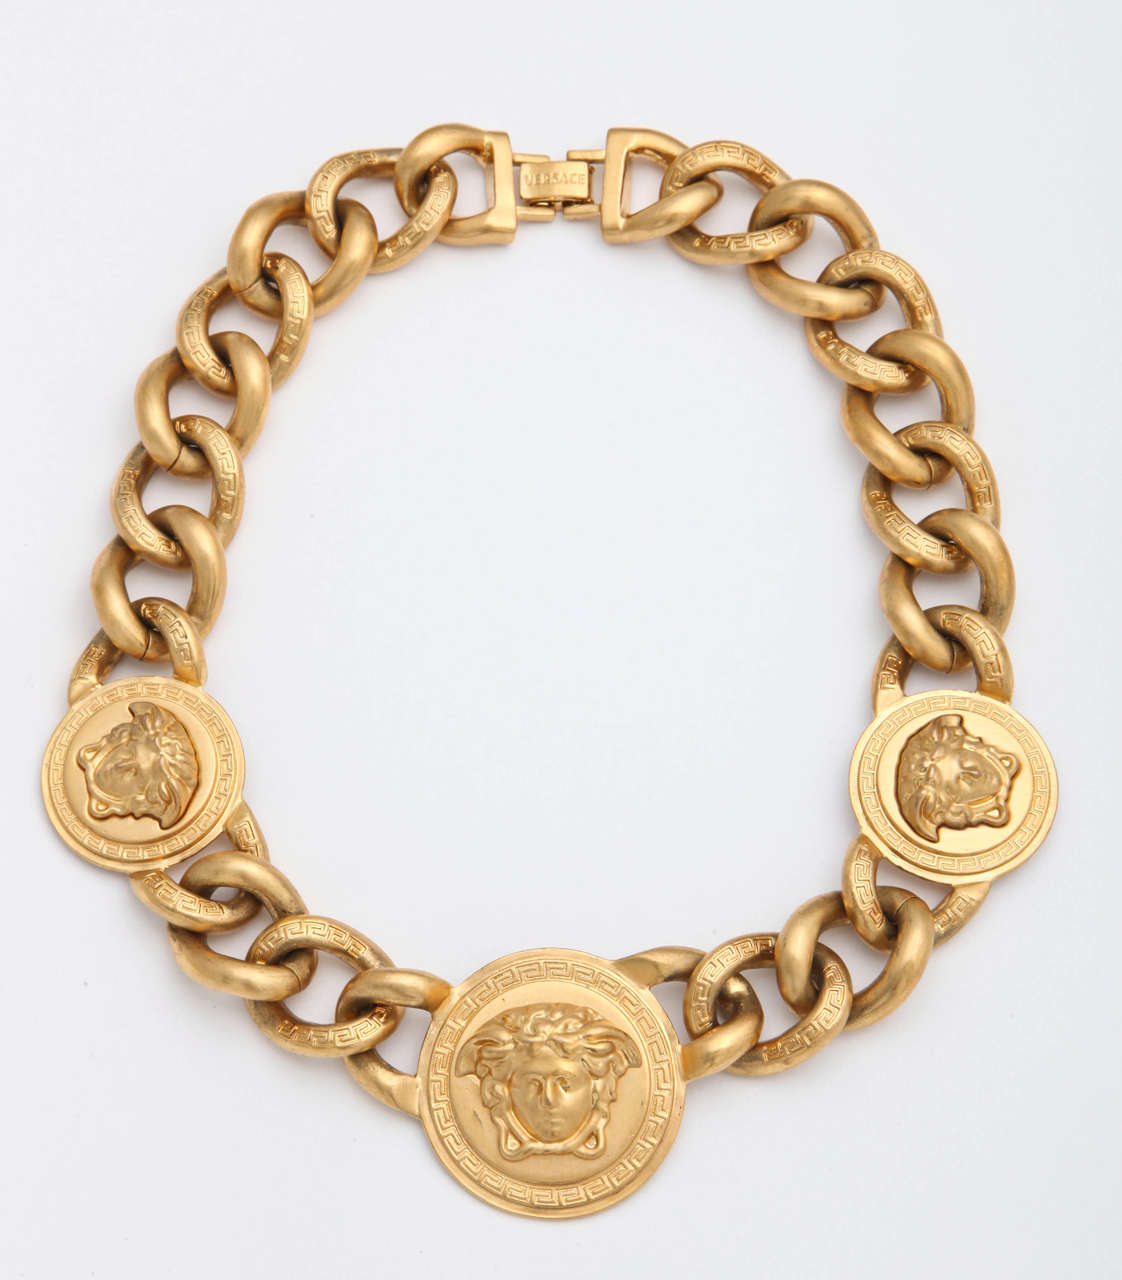 Versace 3 Medusa Gold Chain Necklace 2